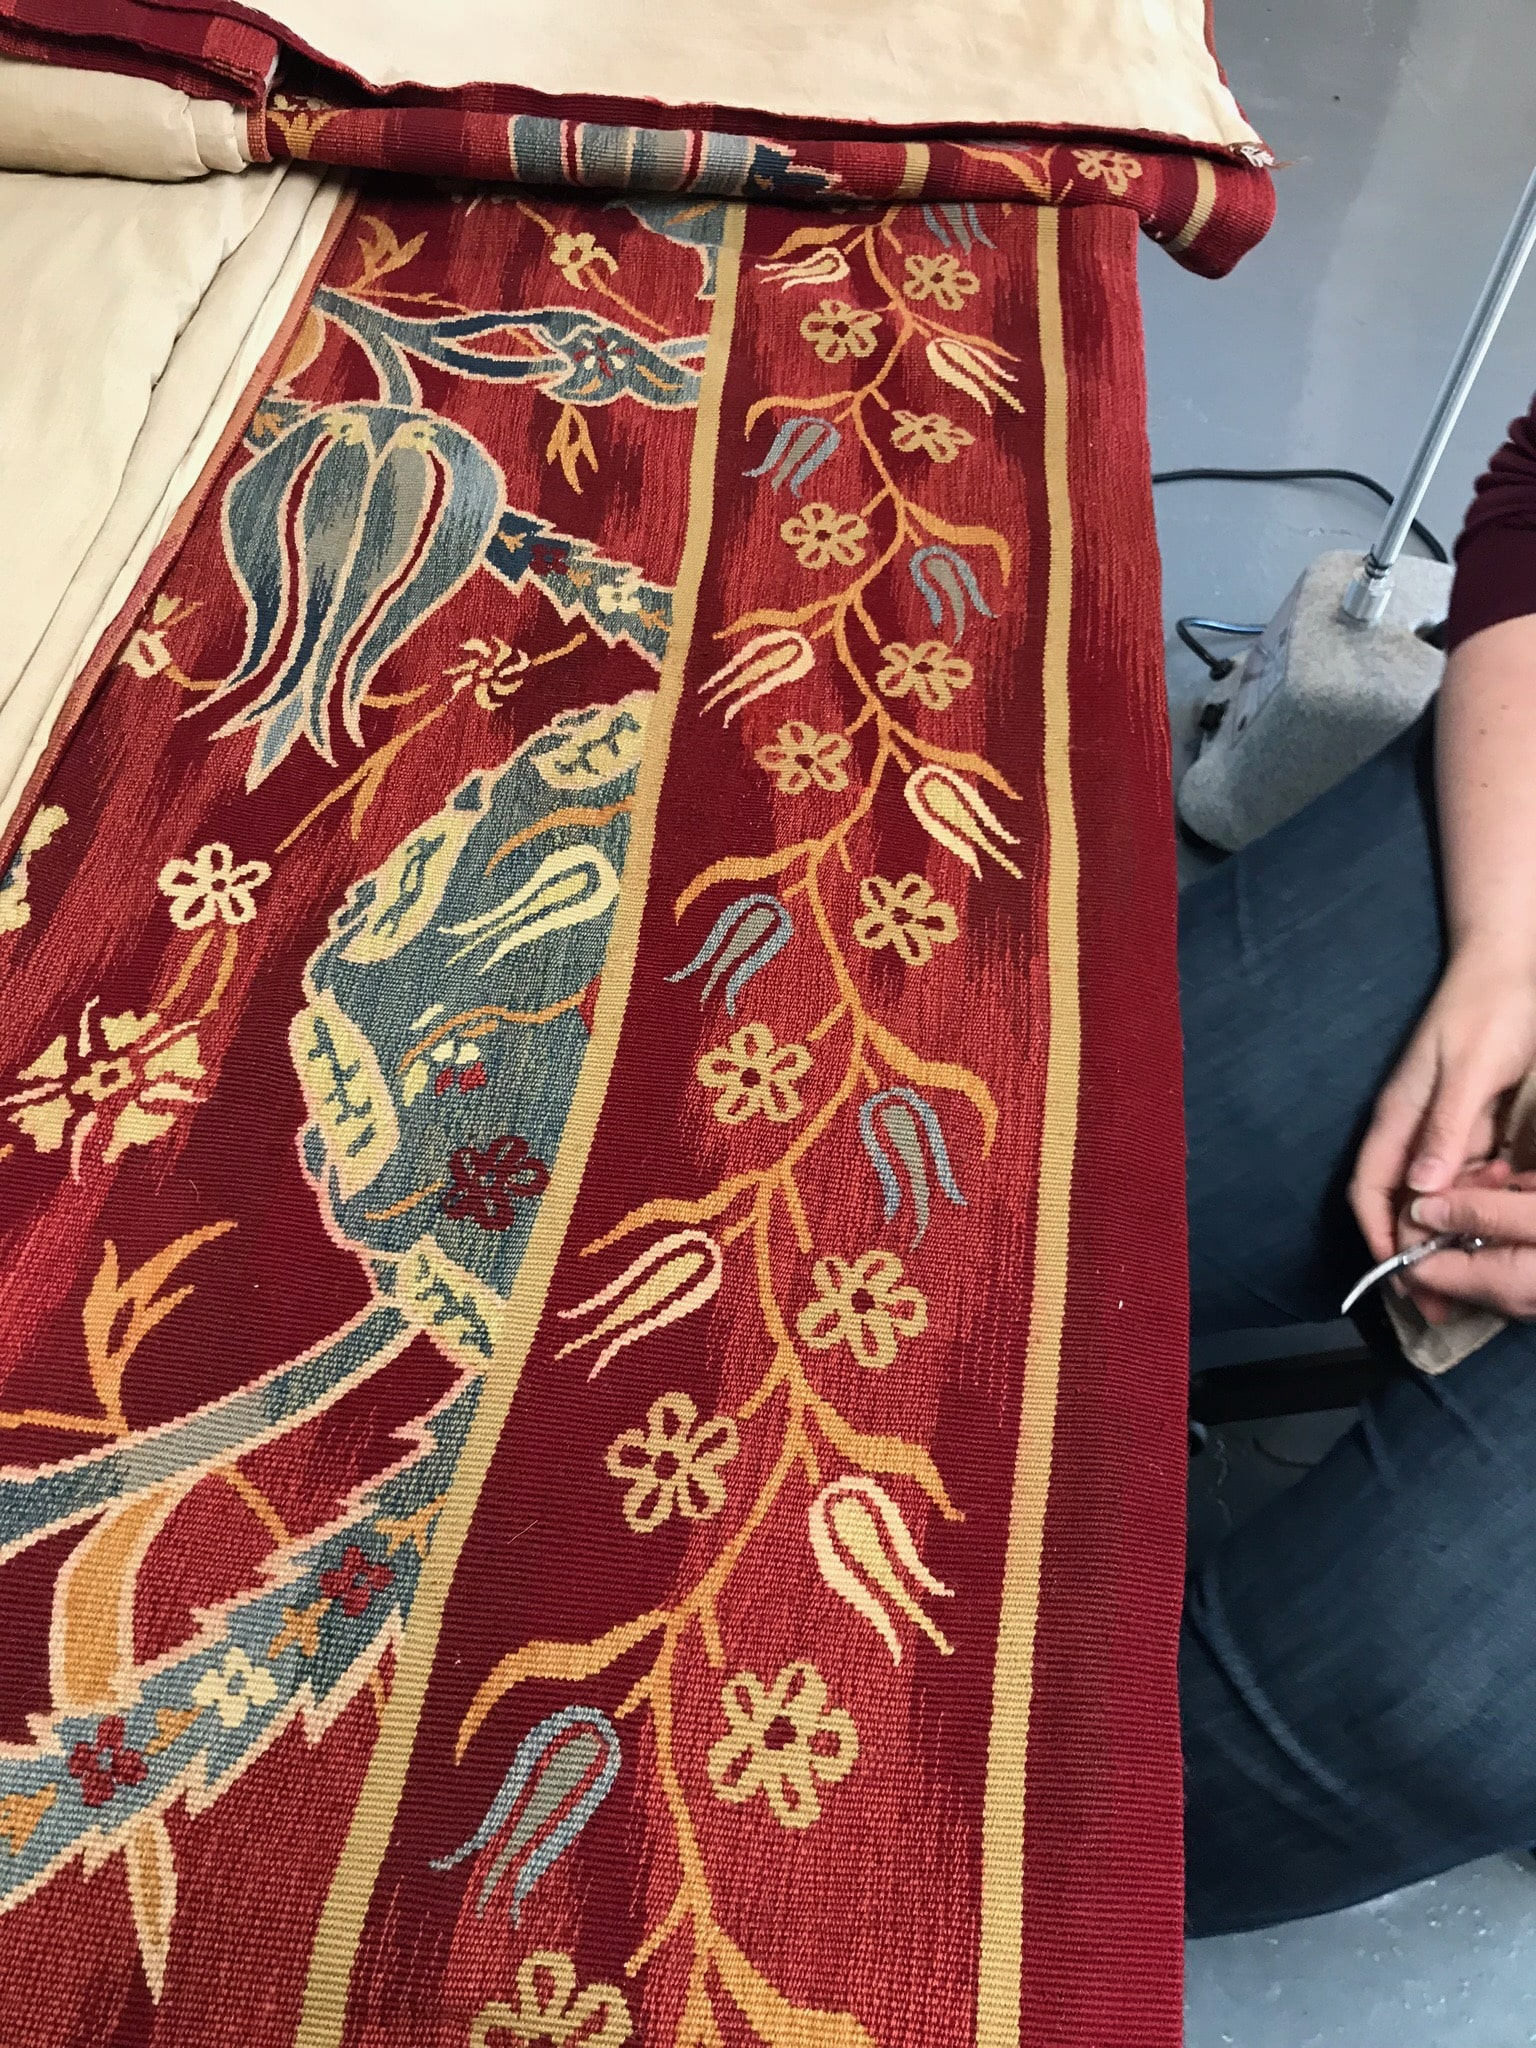 Repair of a Tapestry PDX